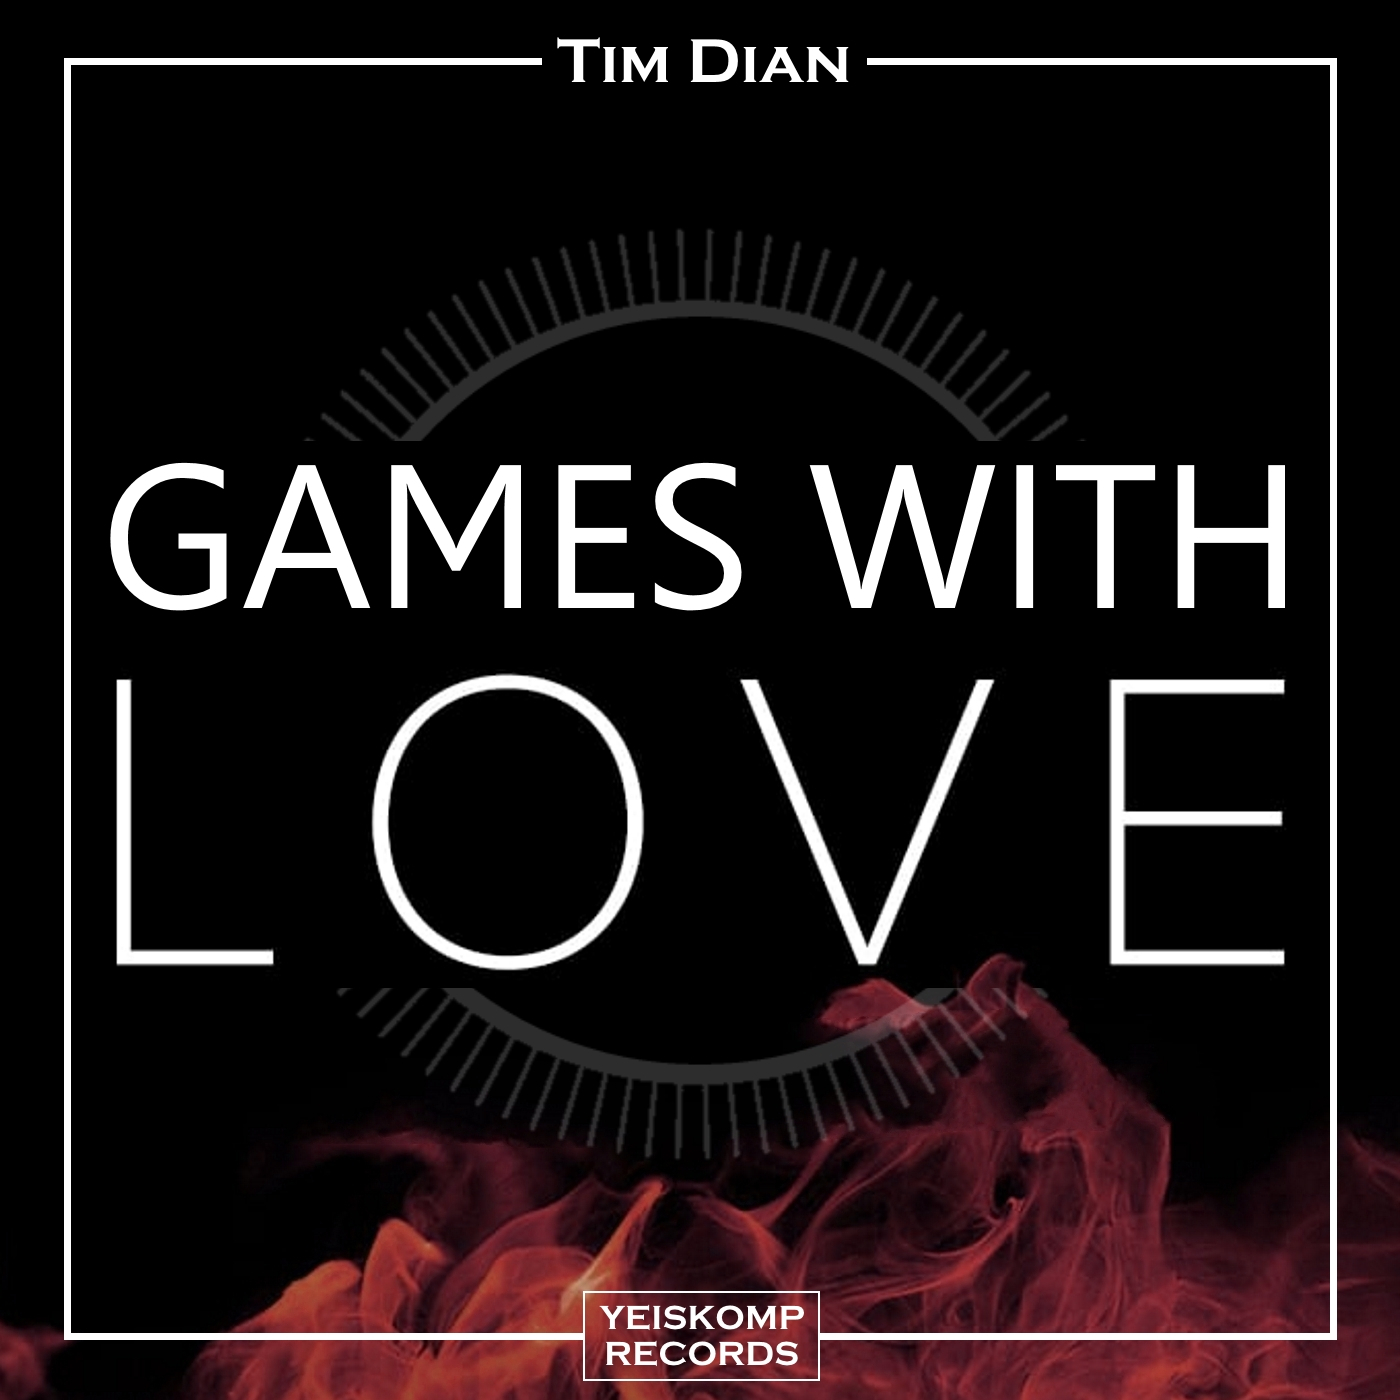 Tim Dian - Games With Love (Original Mix)